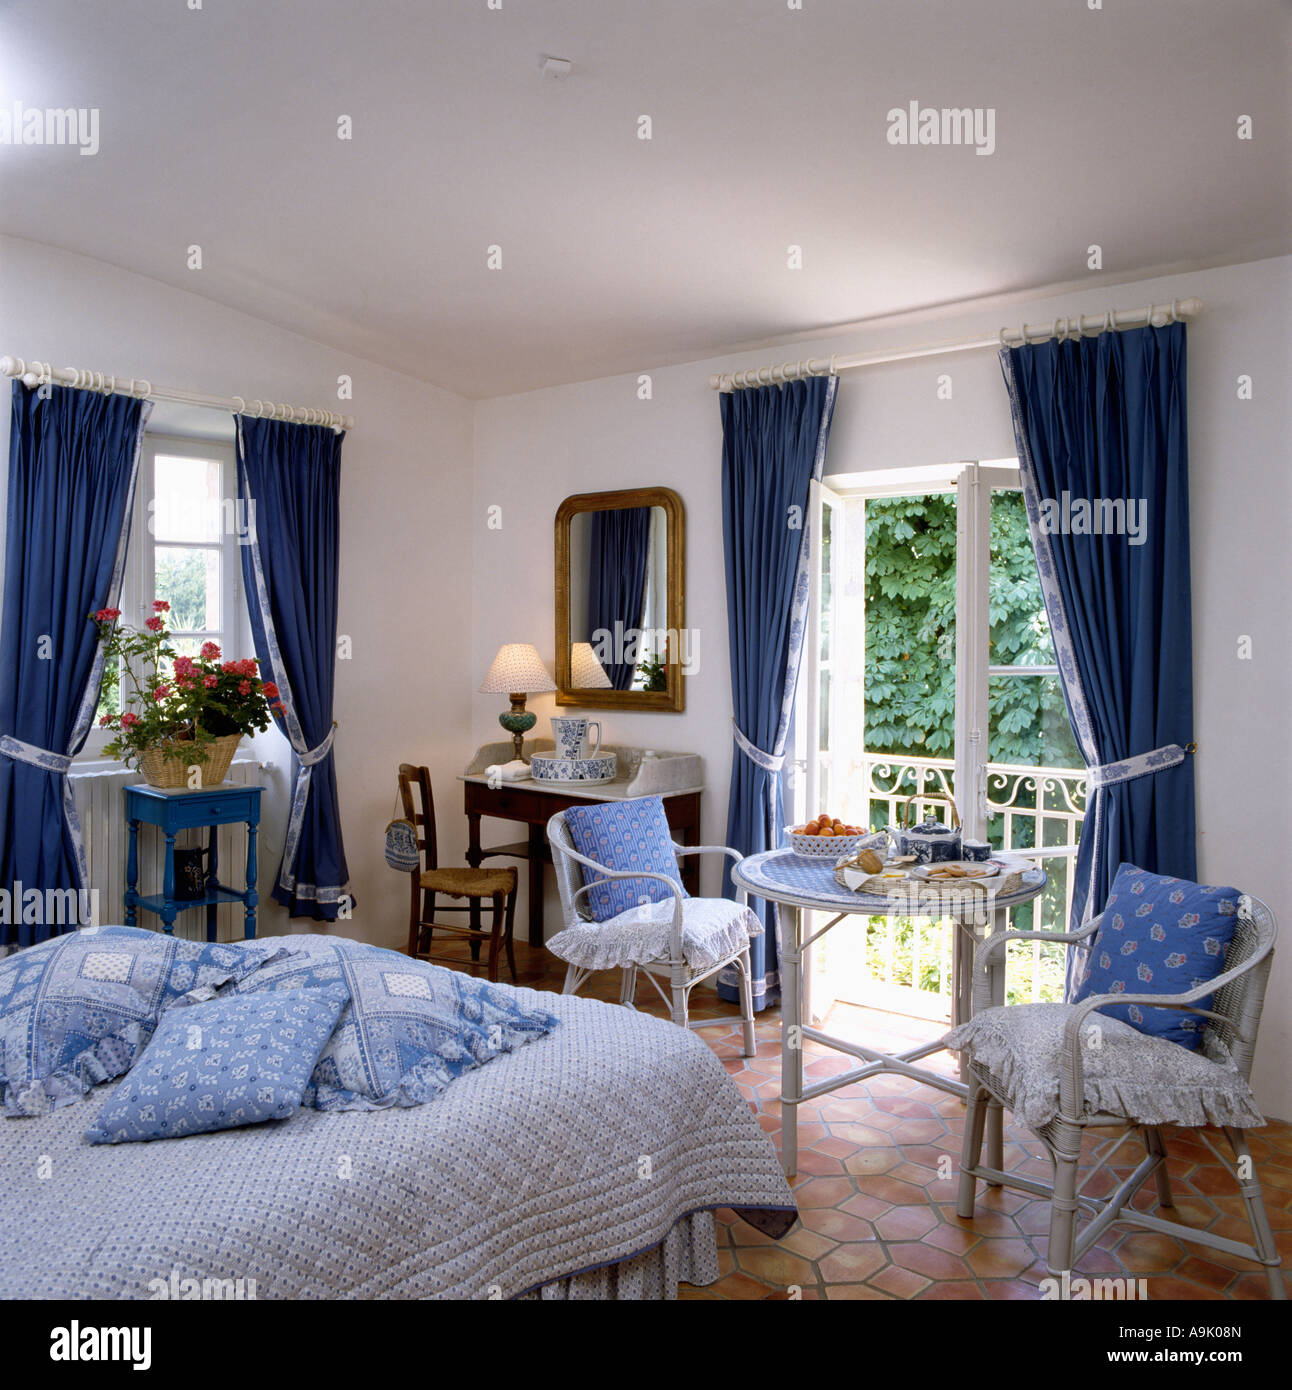 Blue cushions piled on bed in country bedroom with blue curtains at ...